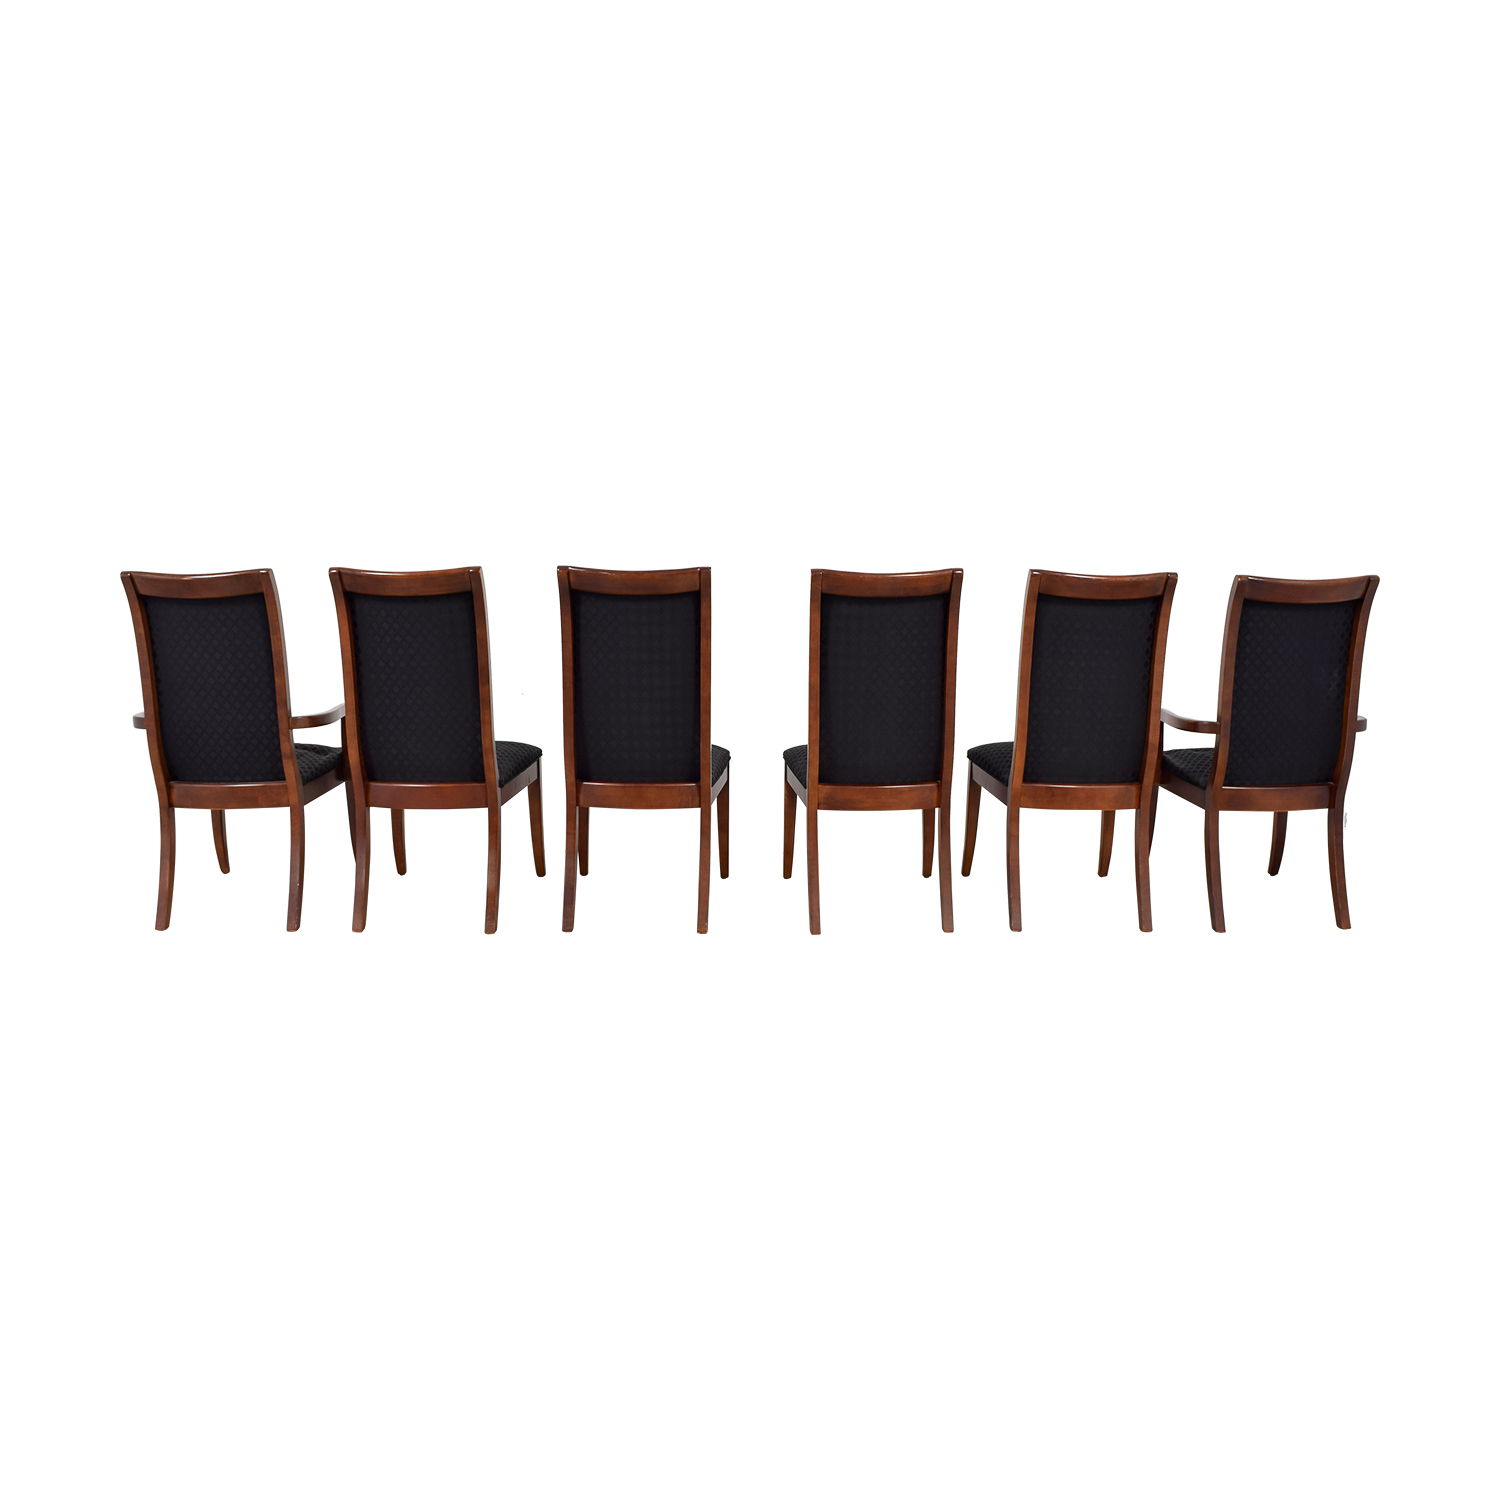 ... Stanley Furniture Stanley Furniture Brown Upholstered Dining Chairs  Dining Chairs ...